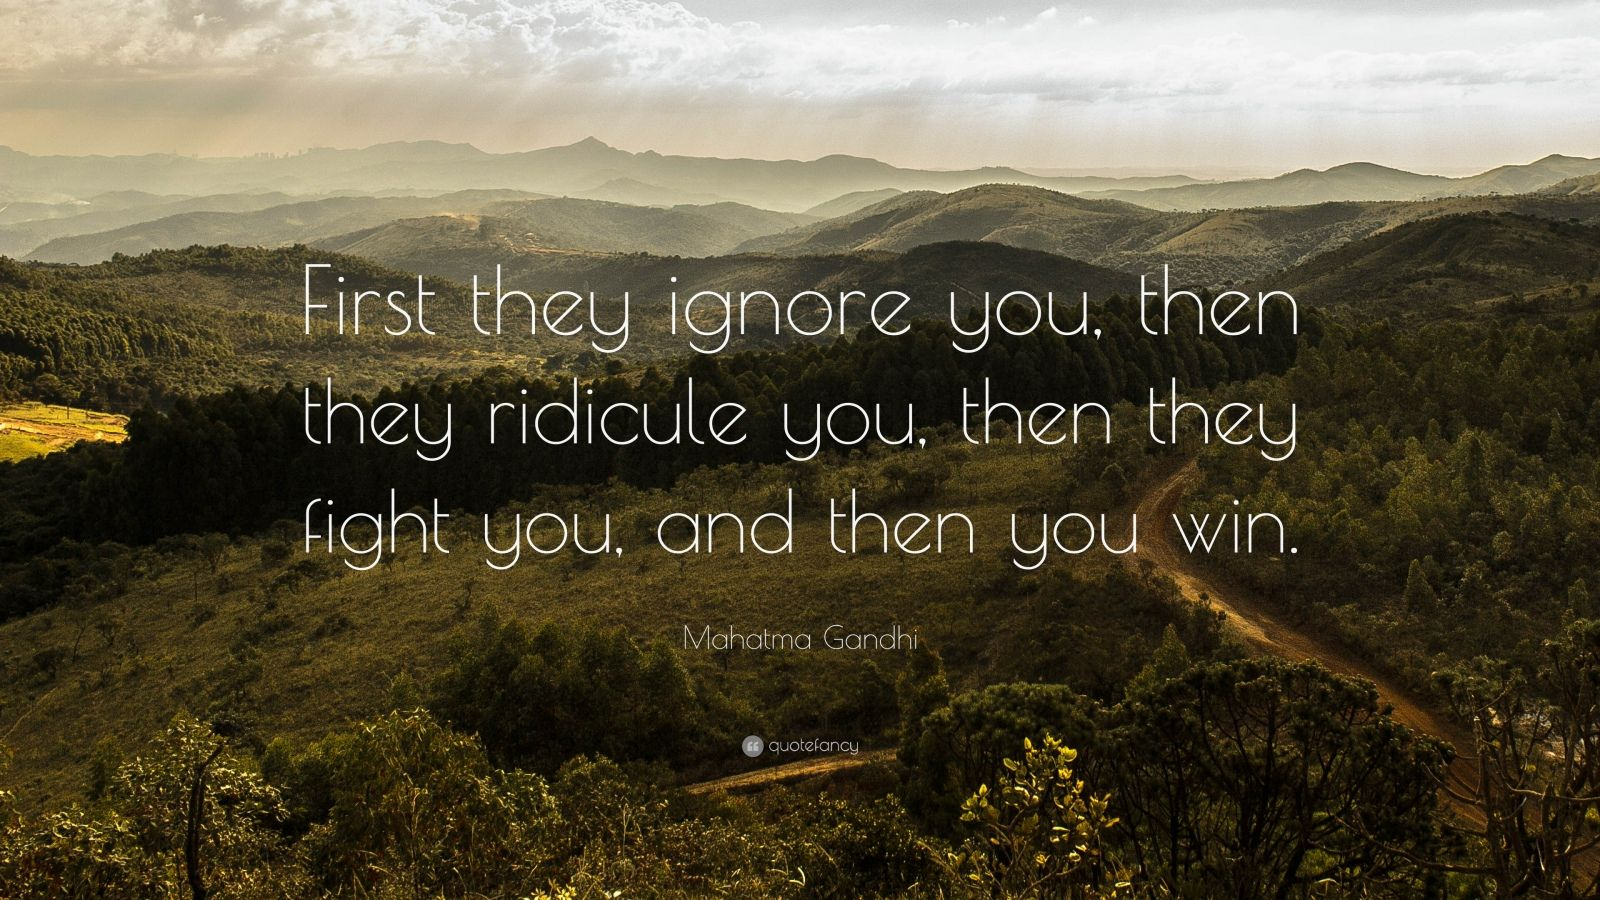 Mahatma Gandhi - first they ignore you, then they ridicule you, then they fight you, and then You Win. .quotefancy σαν Ἀργολίδα